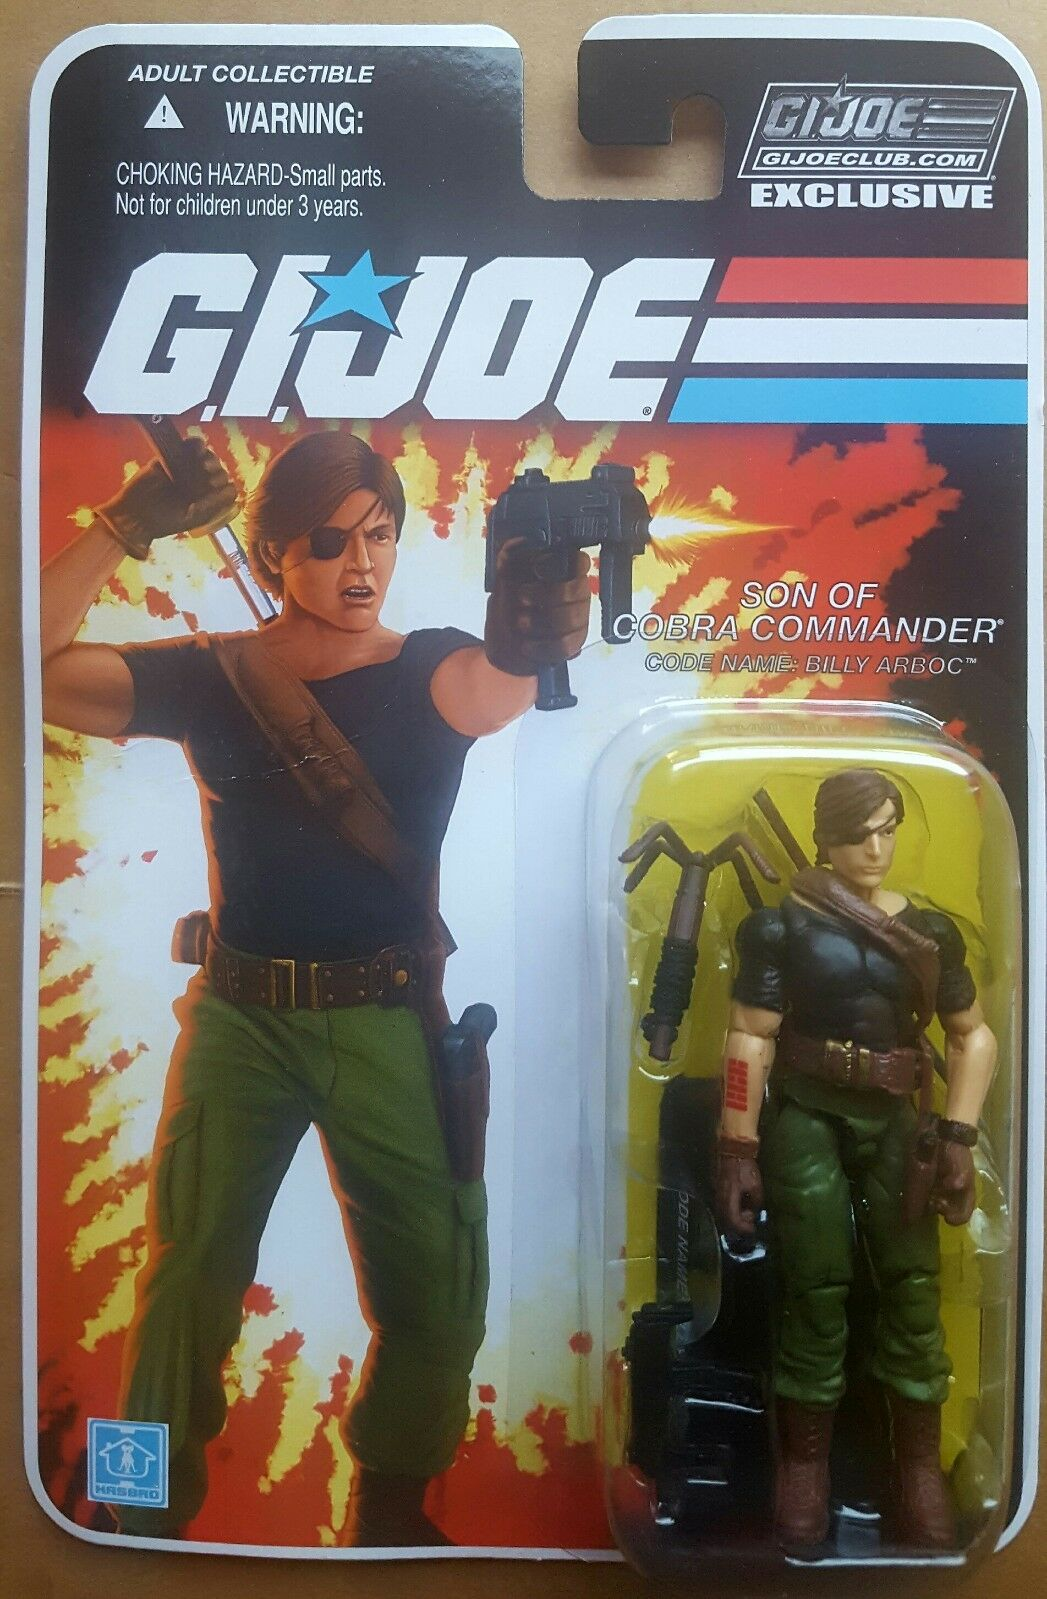 GI Joe Collectors' Club Subscription FSS BILLY son of Cobra Commander MOC MOSC